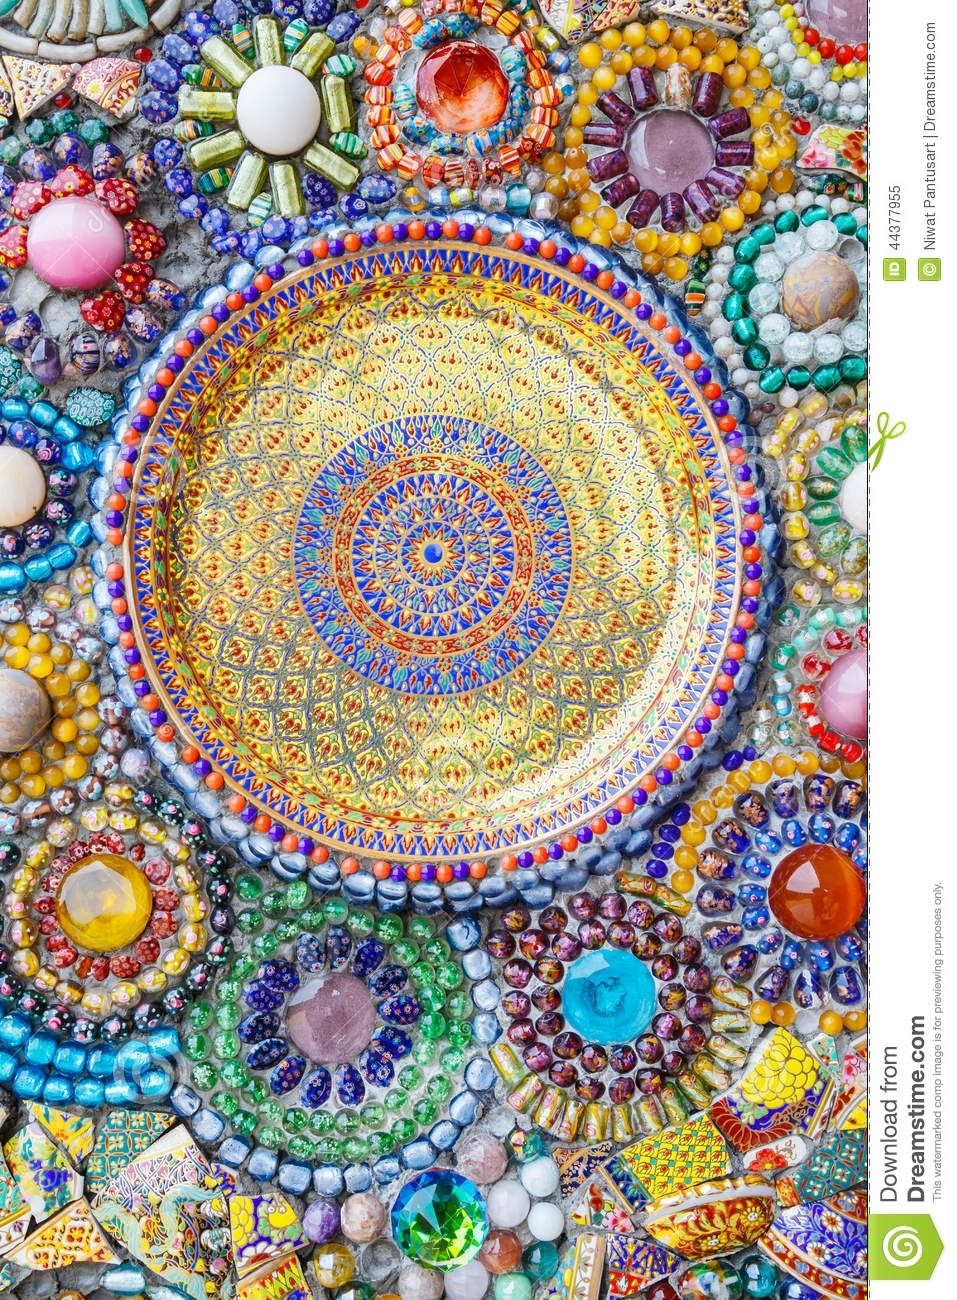 Colorful Mosaic Art Abstract Wall Background Stock Image – Image Regarding 2018 Abstract Mosaic Wall Art (View 10 of 20)